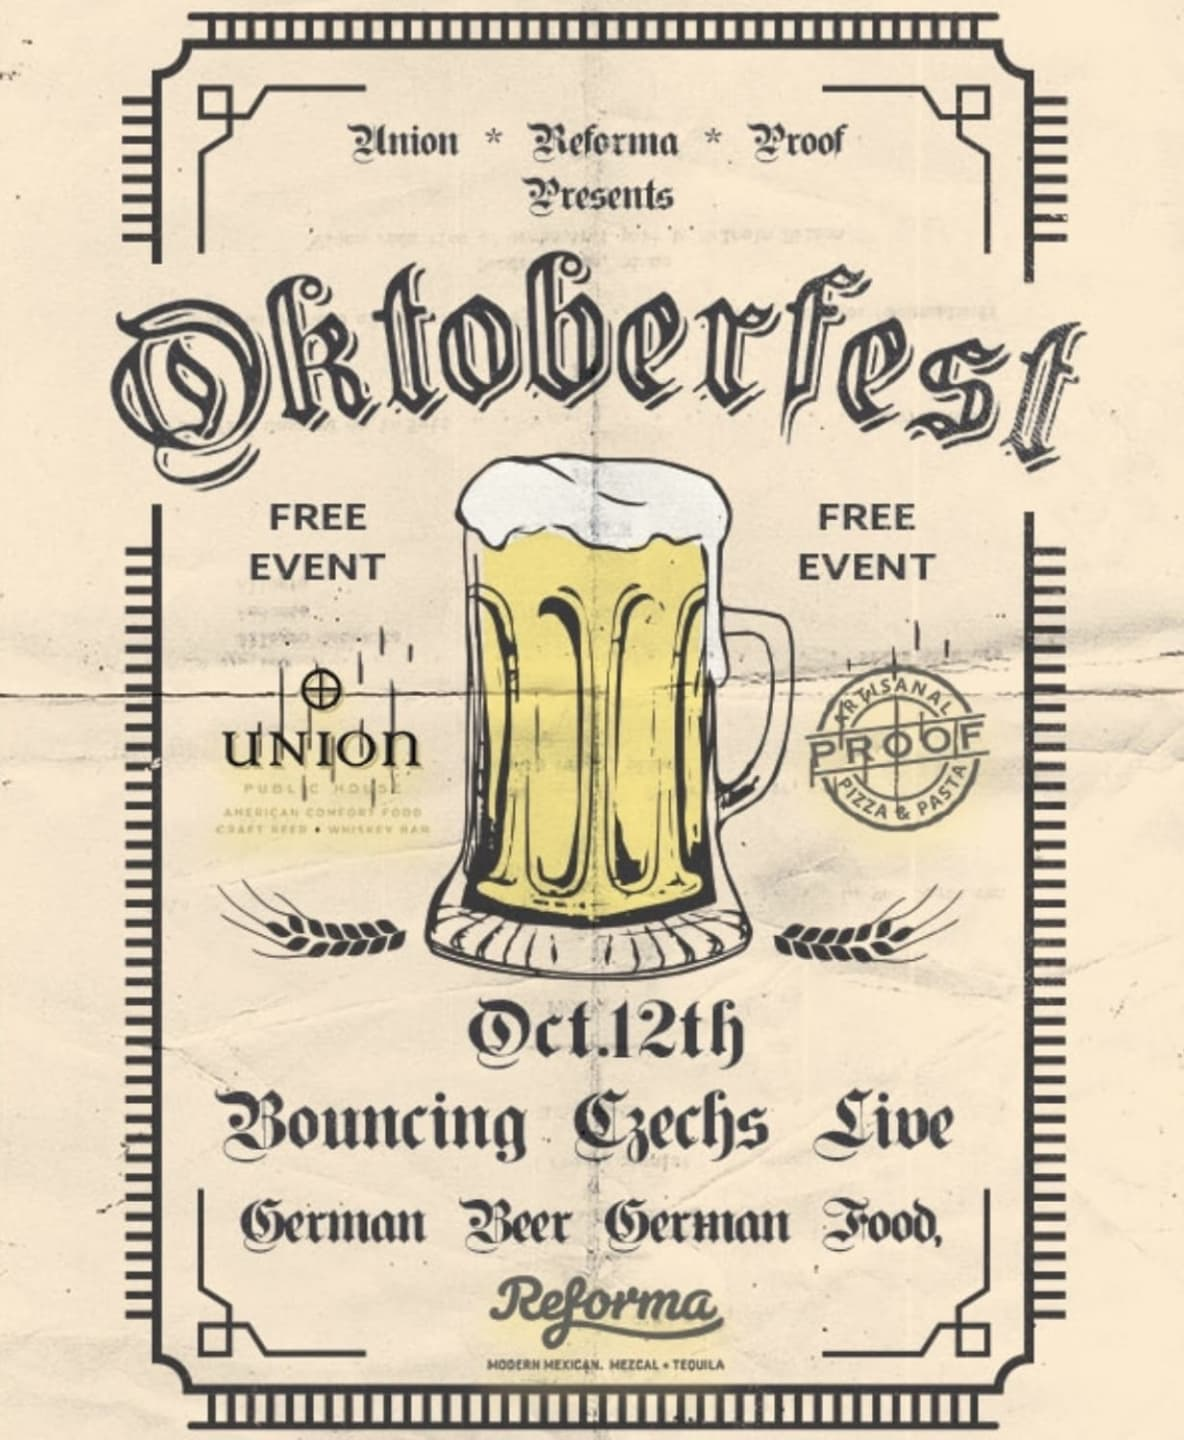 Oktoberfest feat. The Bouncing Czechs